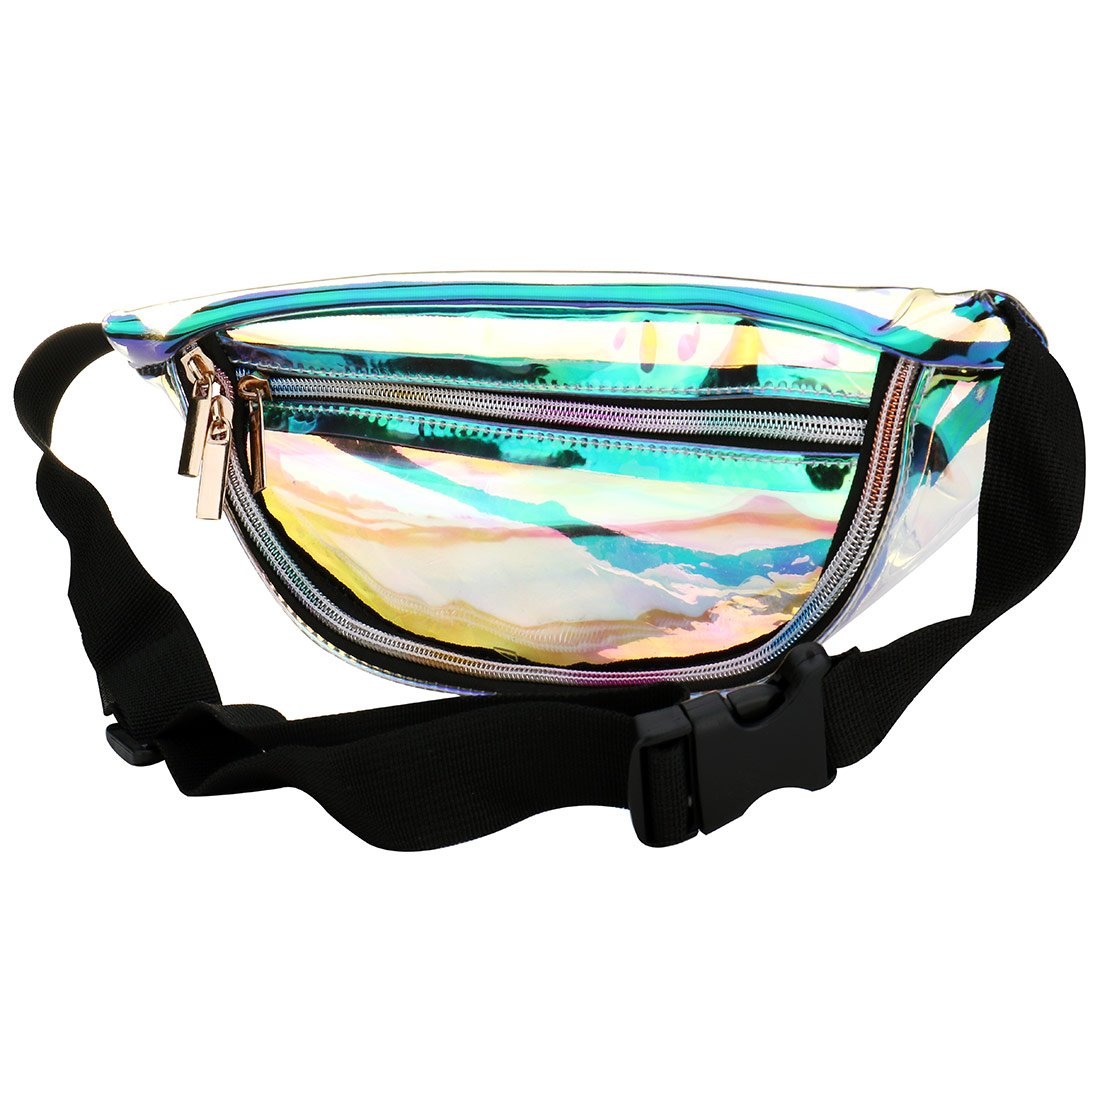 Clear Holographic Fanny Pack, PVC Shiny Fanny Belt Waist Pack Bum Bag for Women